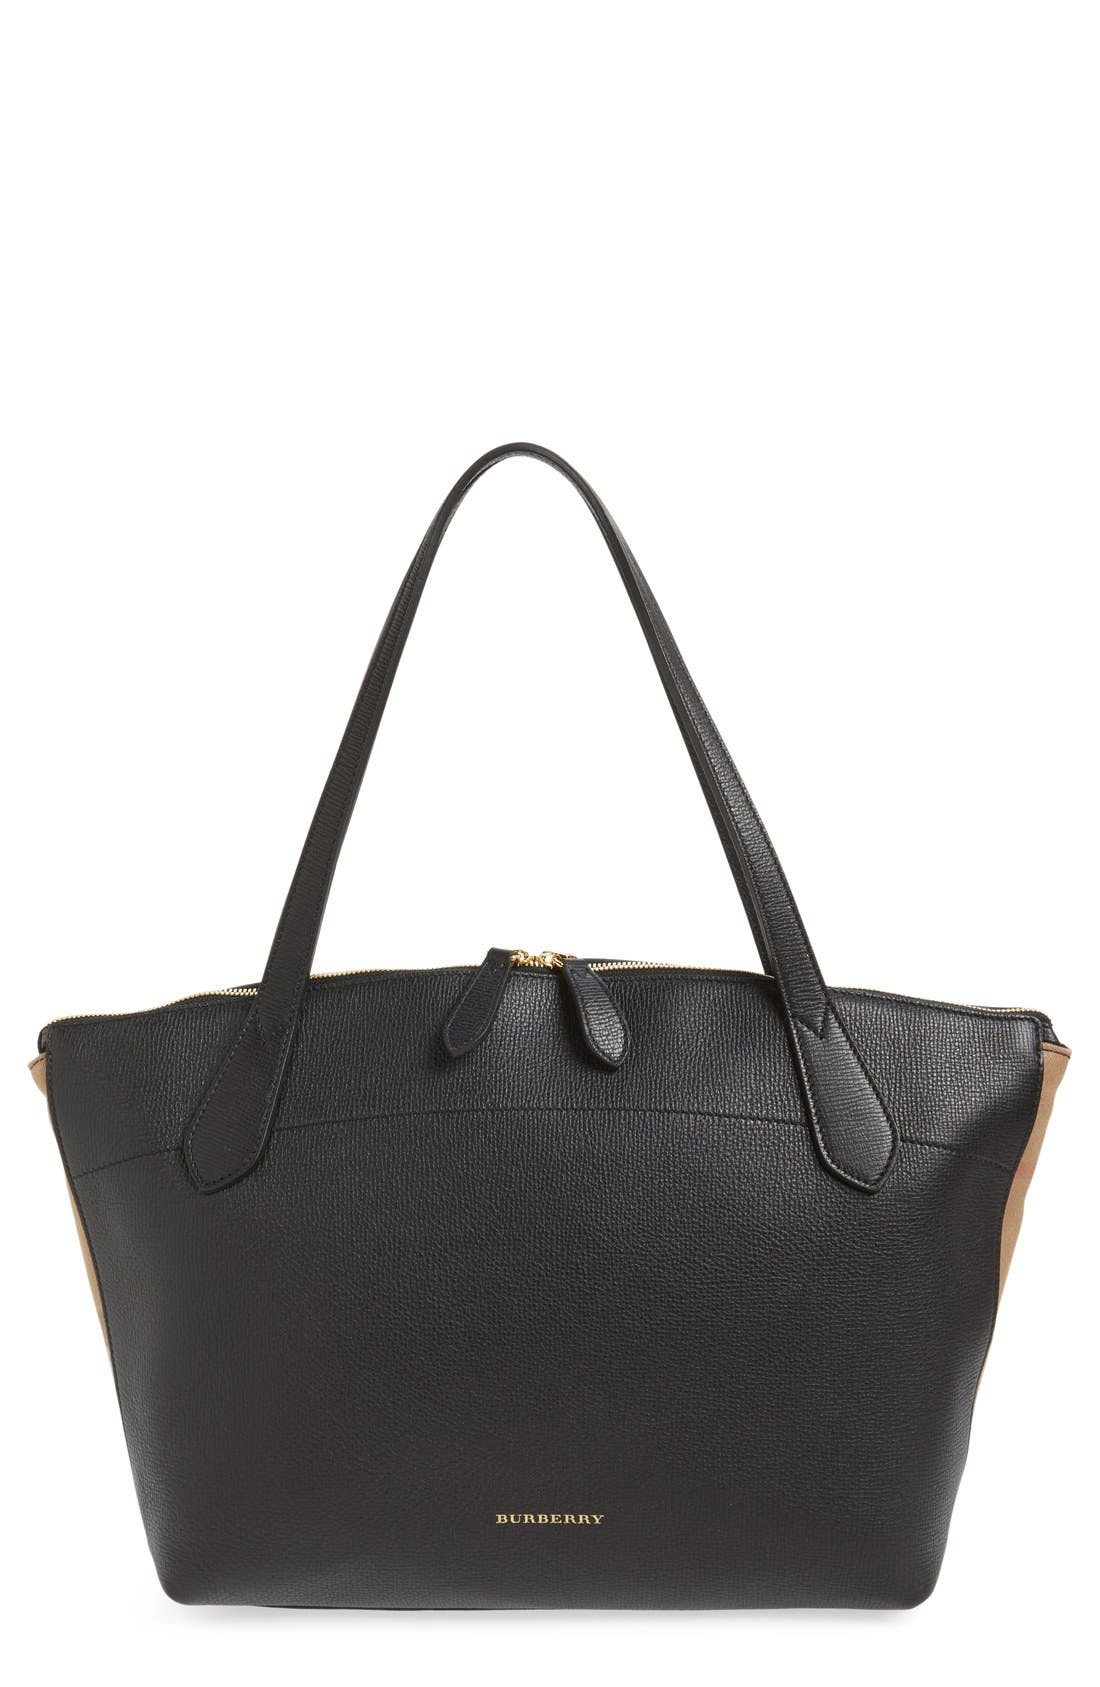 Alternate Image 1 Selected - Burberry Welburn Check Leather Tote